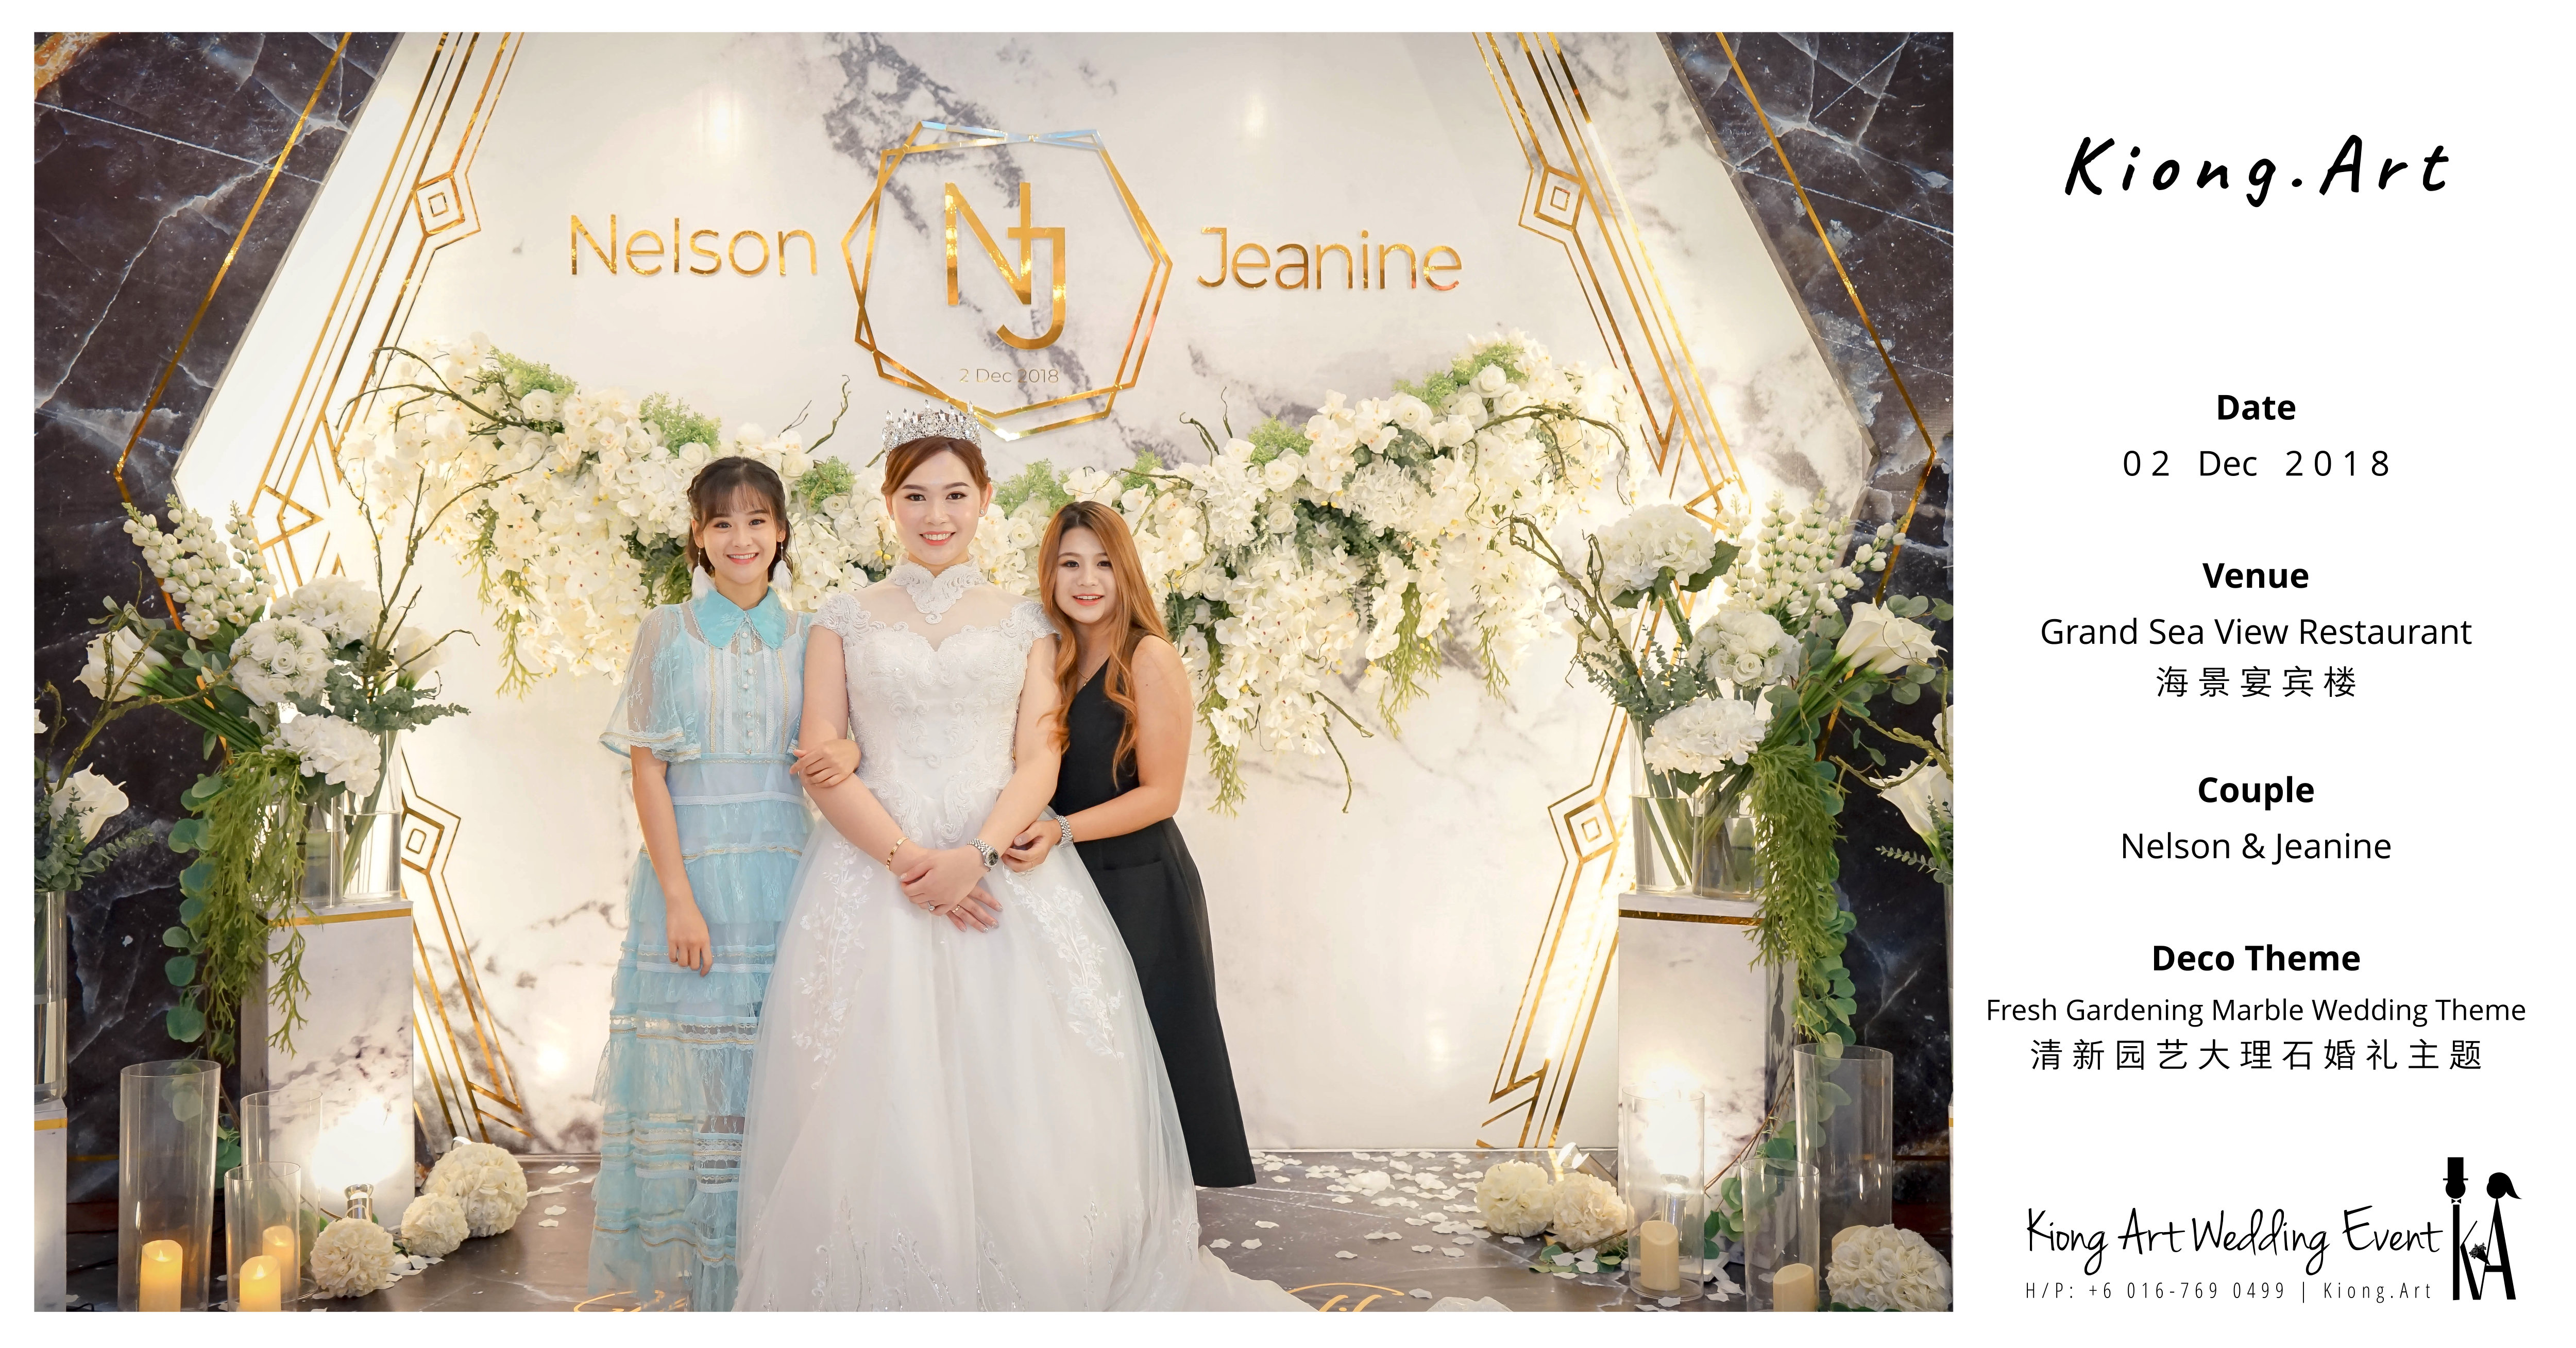 Malaysia Kuala Lumpur Wedding Event Kiong Art Wedding Deco Decoration One-stop Wedding Planning of Nelson and Jeanine Wedding 陈永馨 中国好声音 A11-A00-05